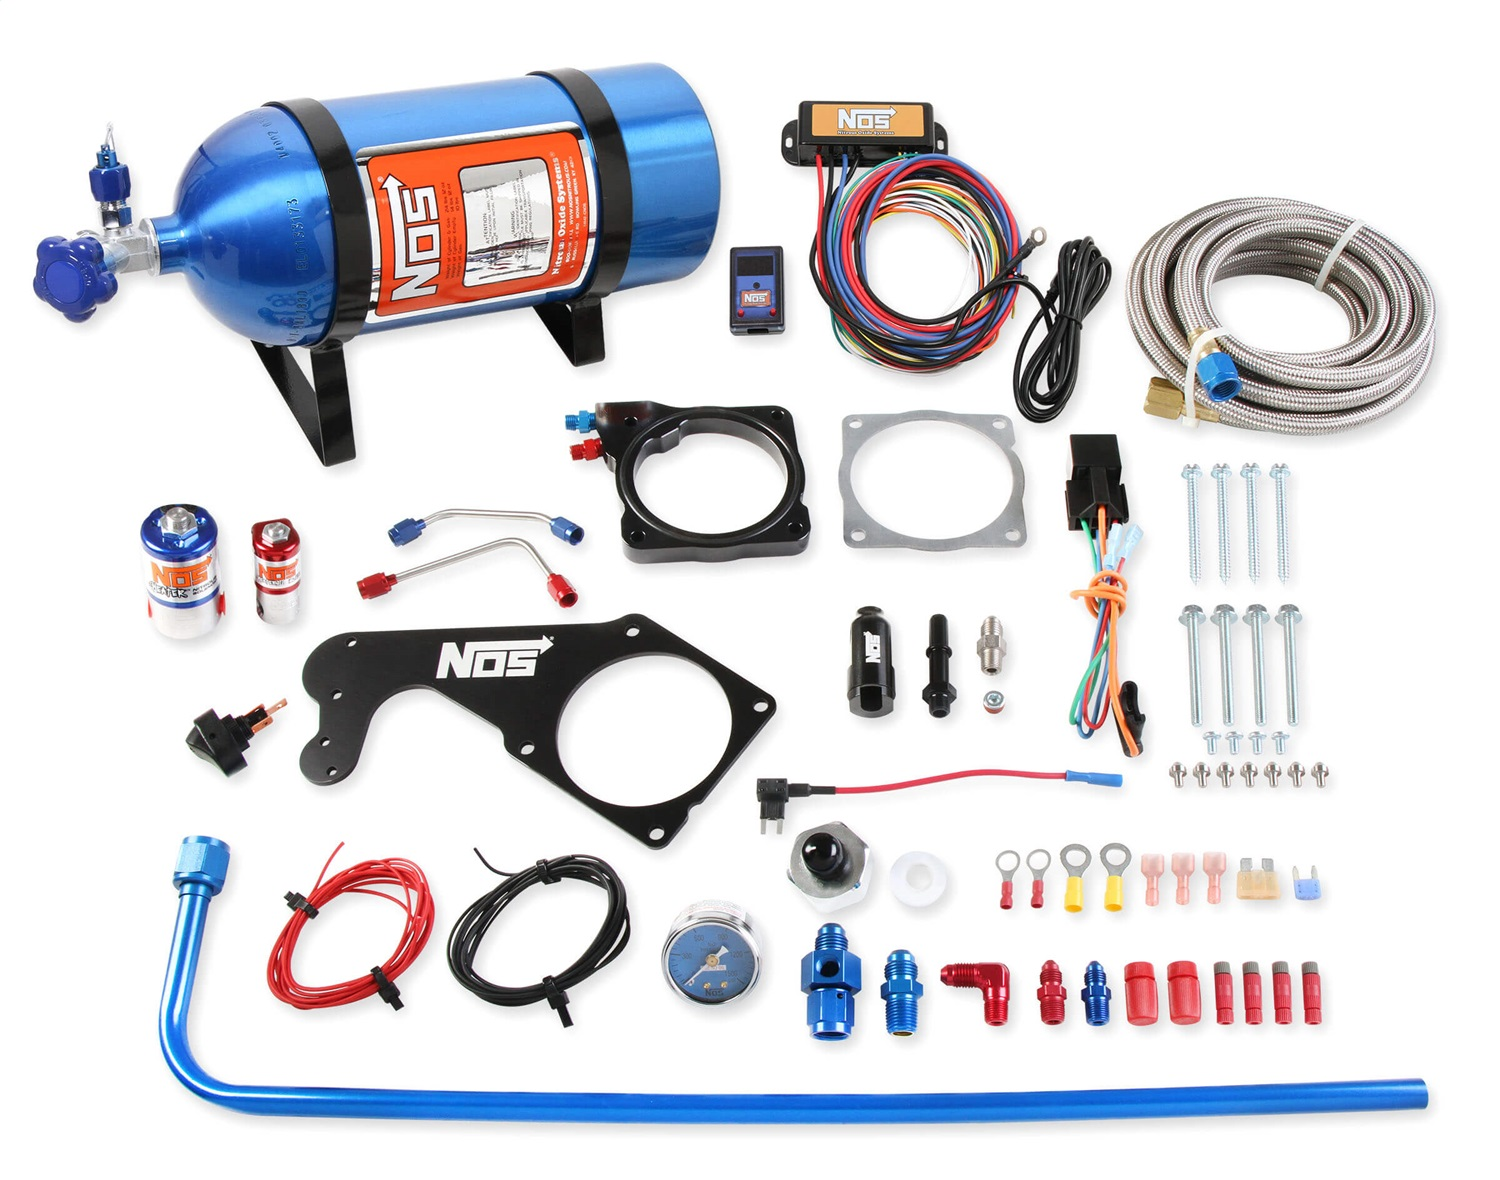 nos 05184nos complete nitrous system 250 rwhp max incl nitrousnos 05184nos complete nitrous system [ 1500 x 1180 Pixel ]